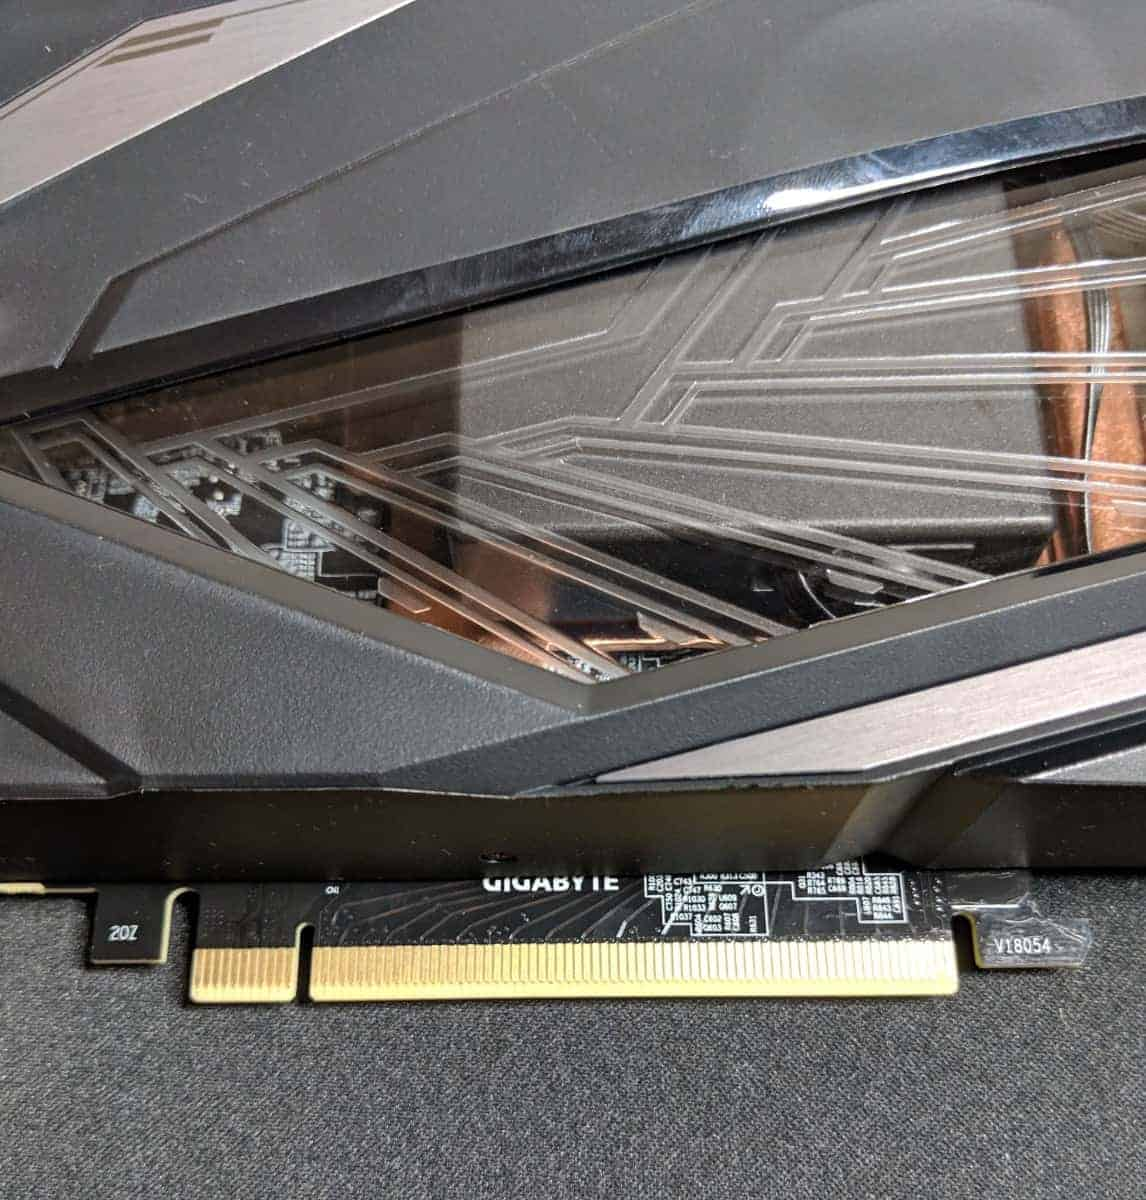 Gigabyte-2080-Xtreme-Waterforce-Photos-01 Gigabyte AORUS RTX 2080 Xtreme Waterforce Review